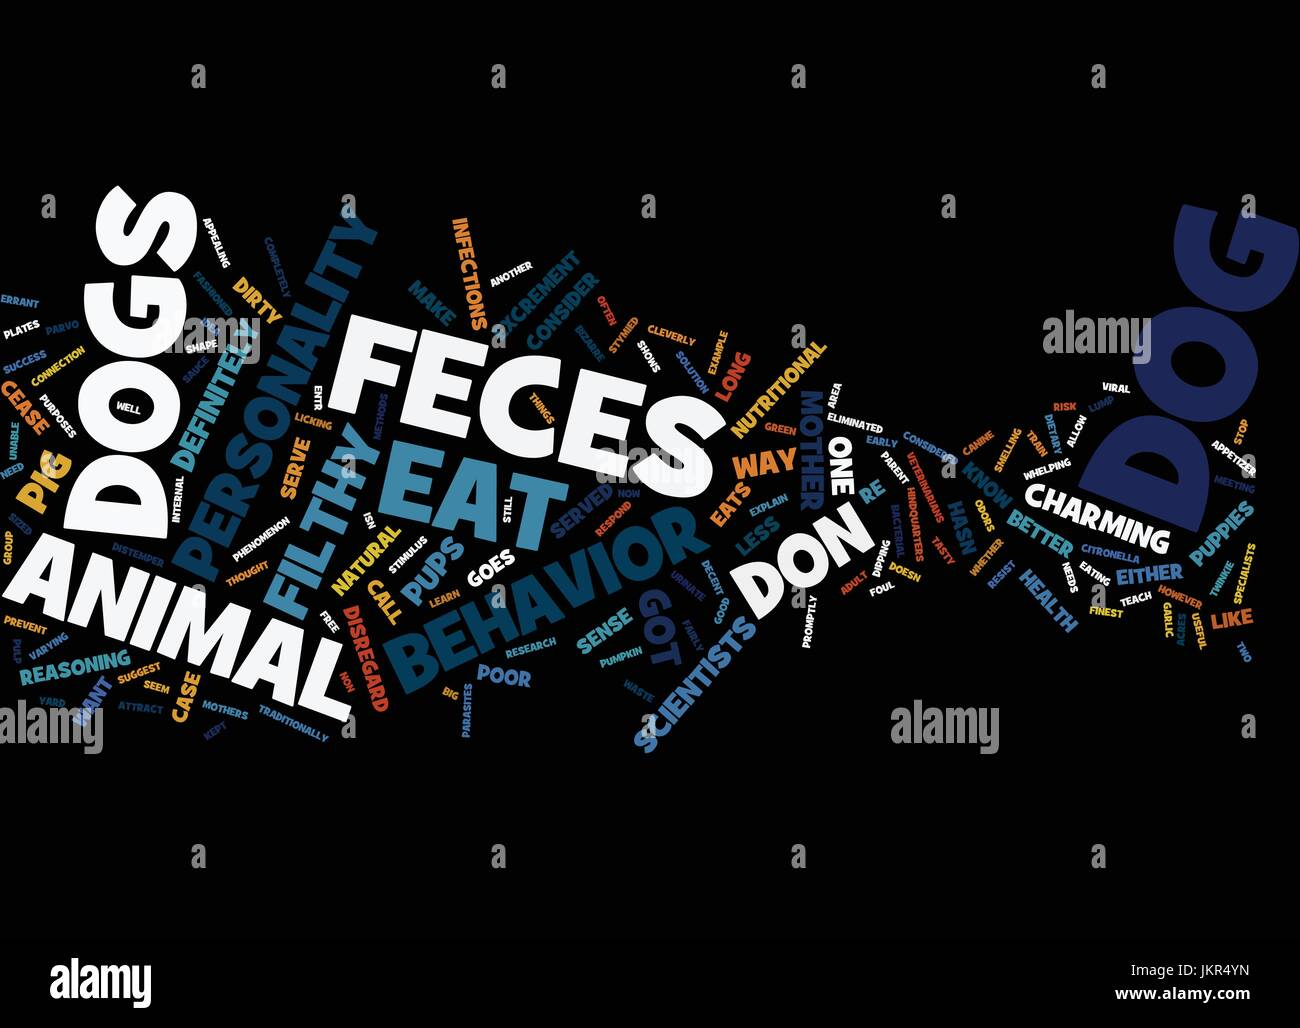 THAT S NOT WHAT THEY MEANT BY SCOOBY SNACKS Text Background Word Cloud Concept